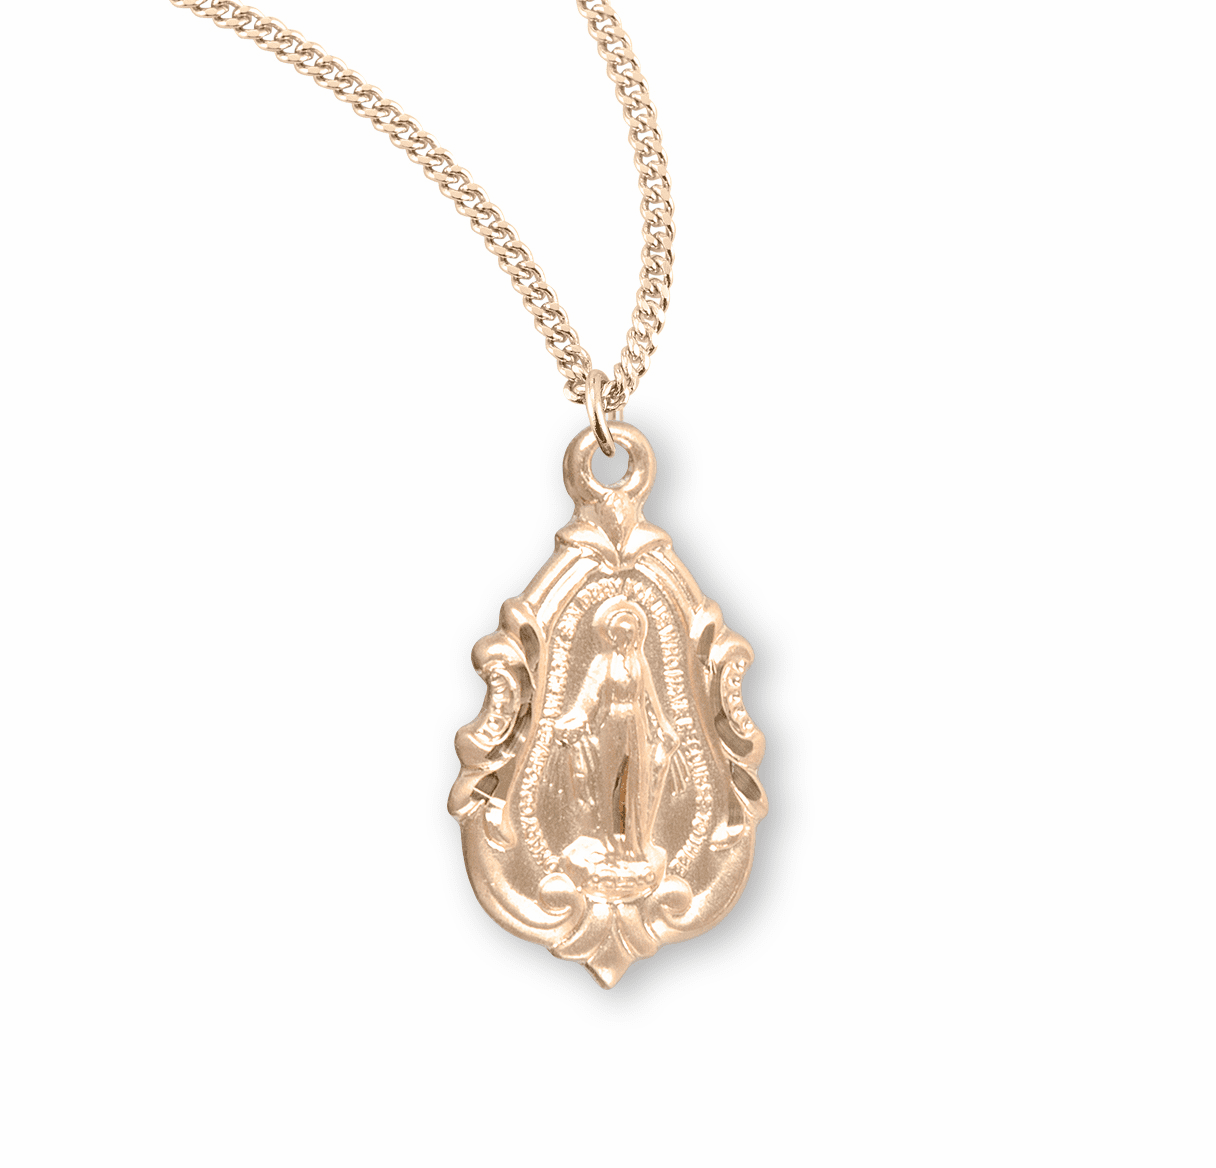 Miraculous Medal Gold/Sterling & Gold-plated Jewelry